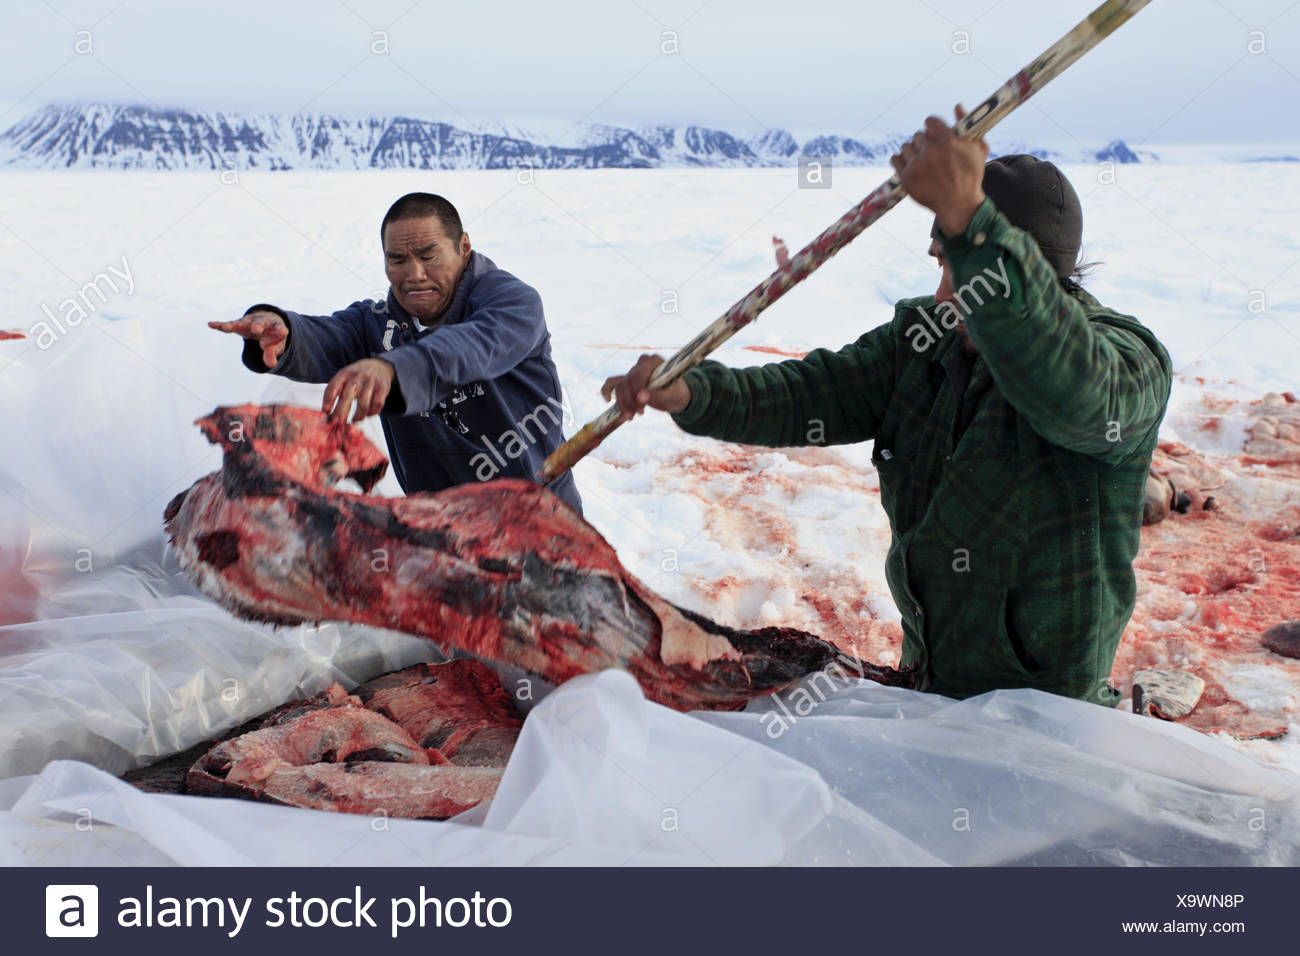 North America, Canada, Nordkanada, Nunavut, Baffin Iceland, Eclipse sound, Pond Inlet, Inuit, whale hunt, hunter, narwhal, disassemble, - Stock Image